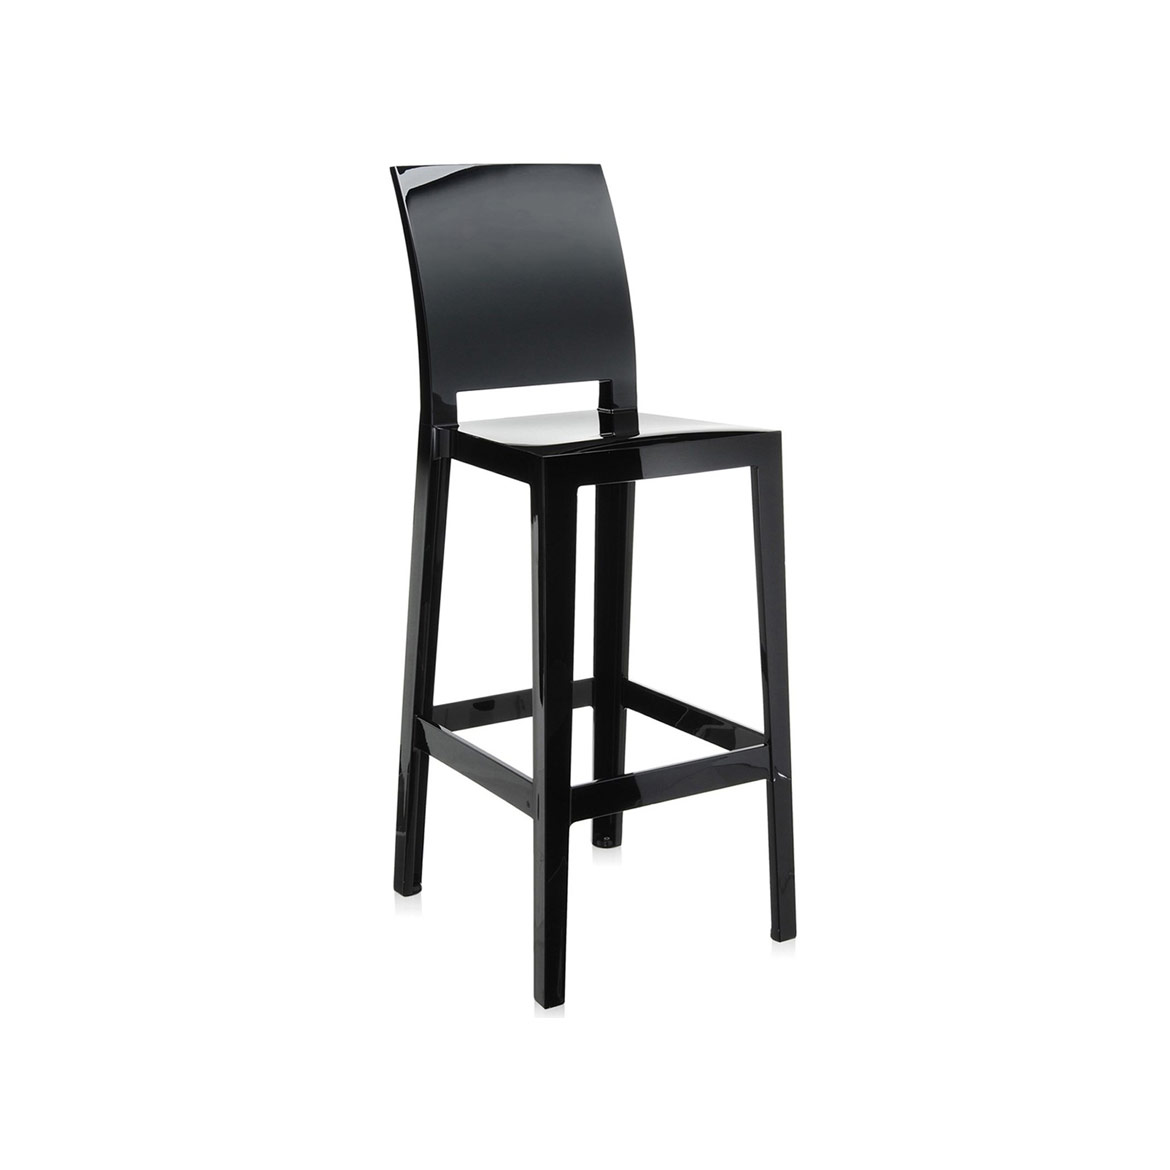 One More Please Stool Hip Furniture